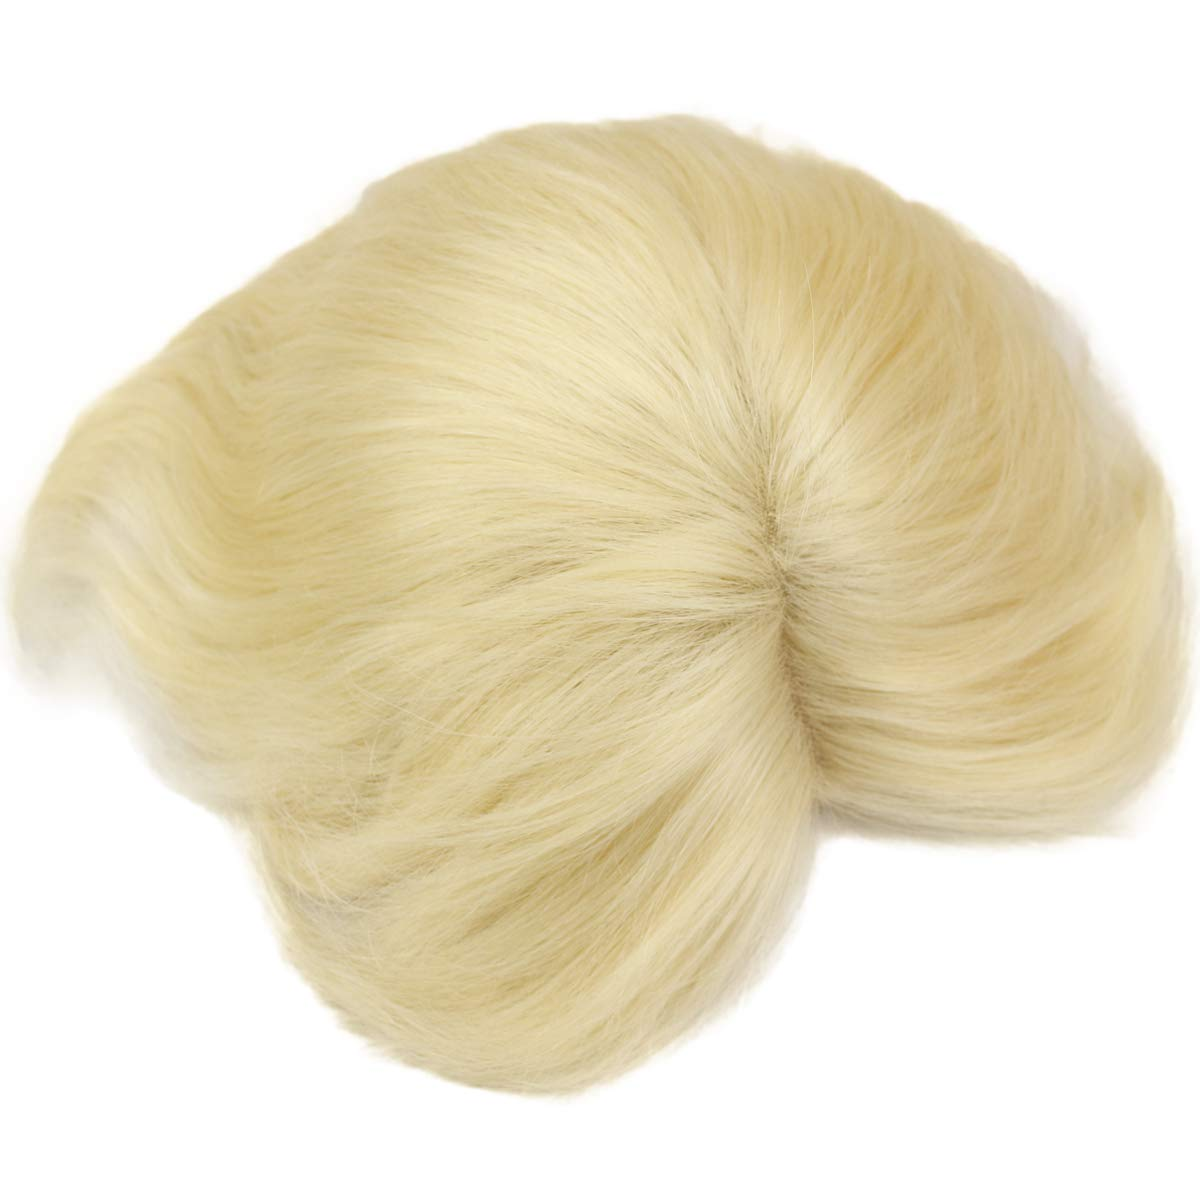 Swiss Full Lace Men's Toupee European Real Human Hair Replacement for Men Hairpiece #613 Blonde Color